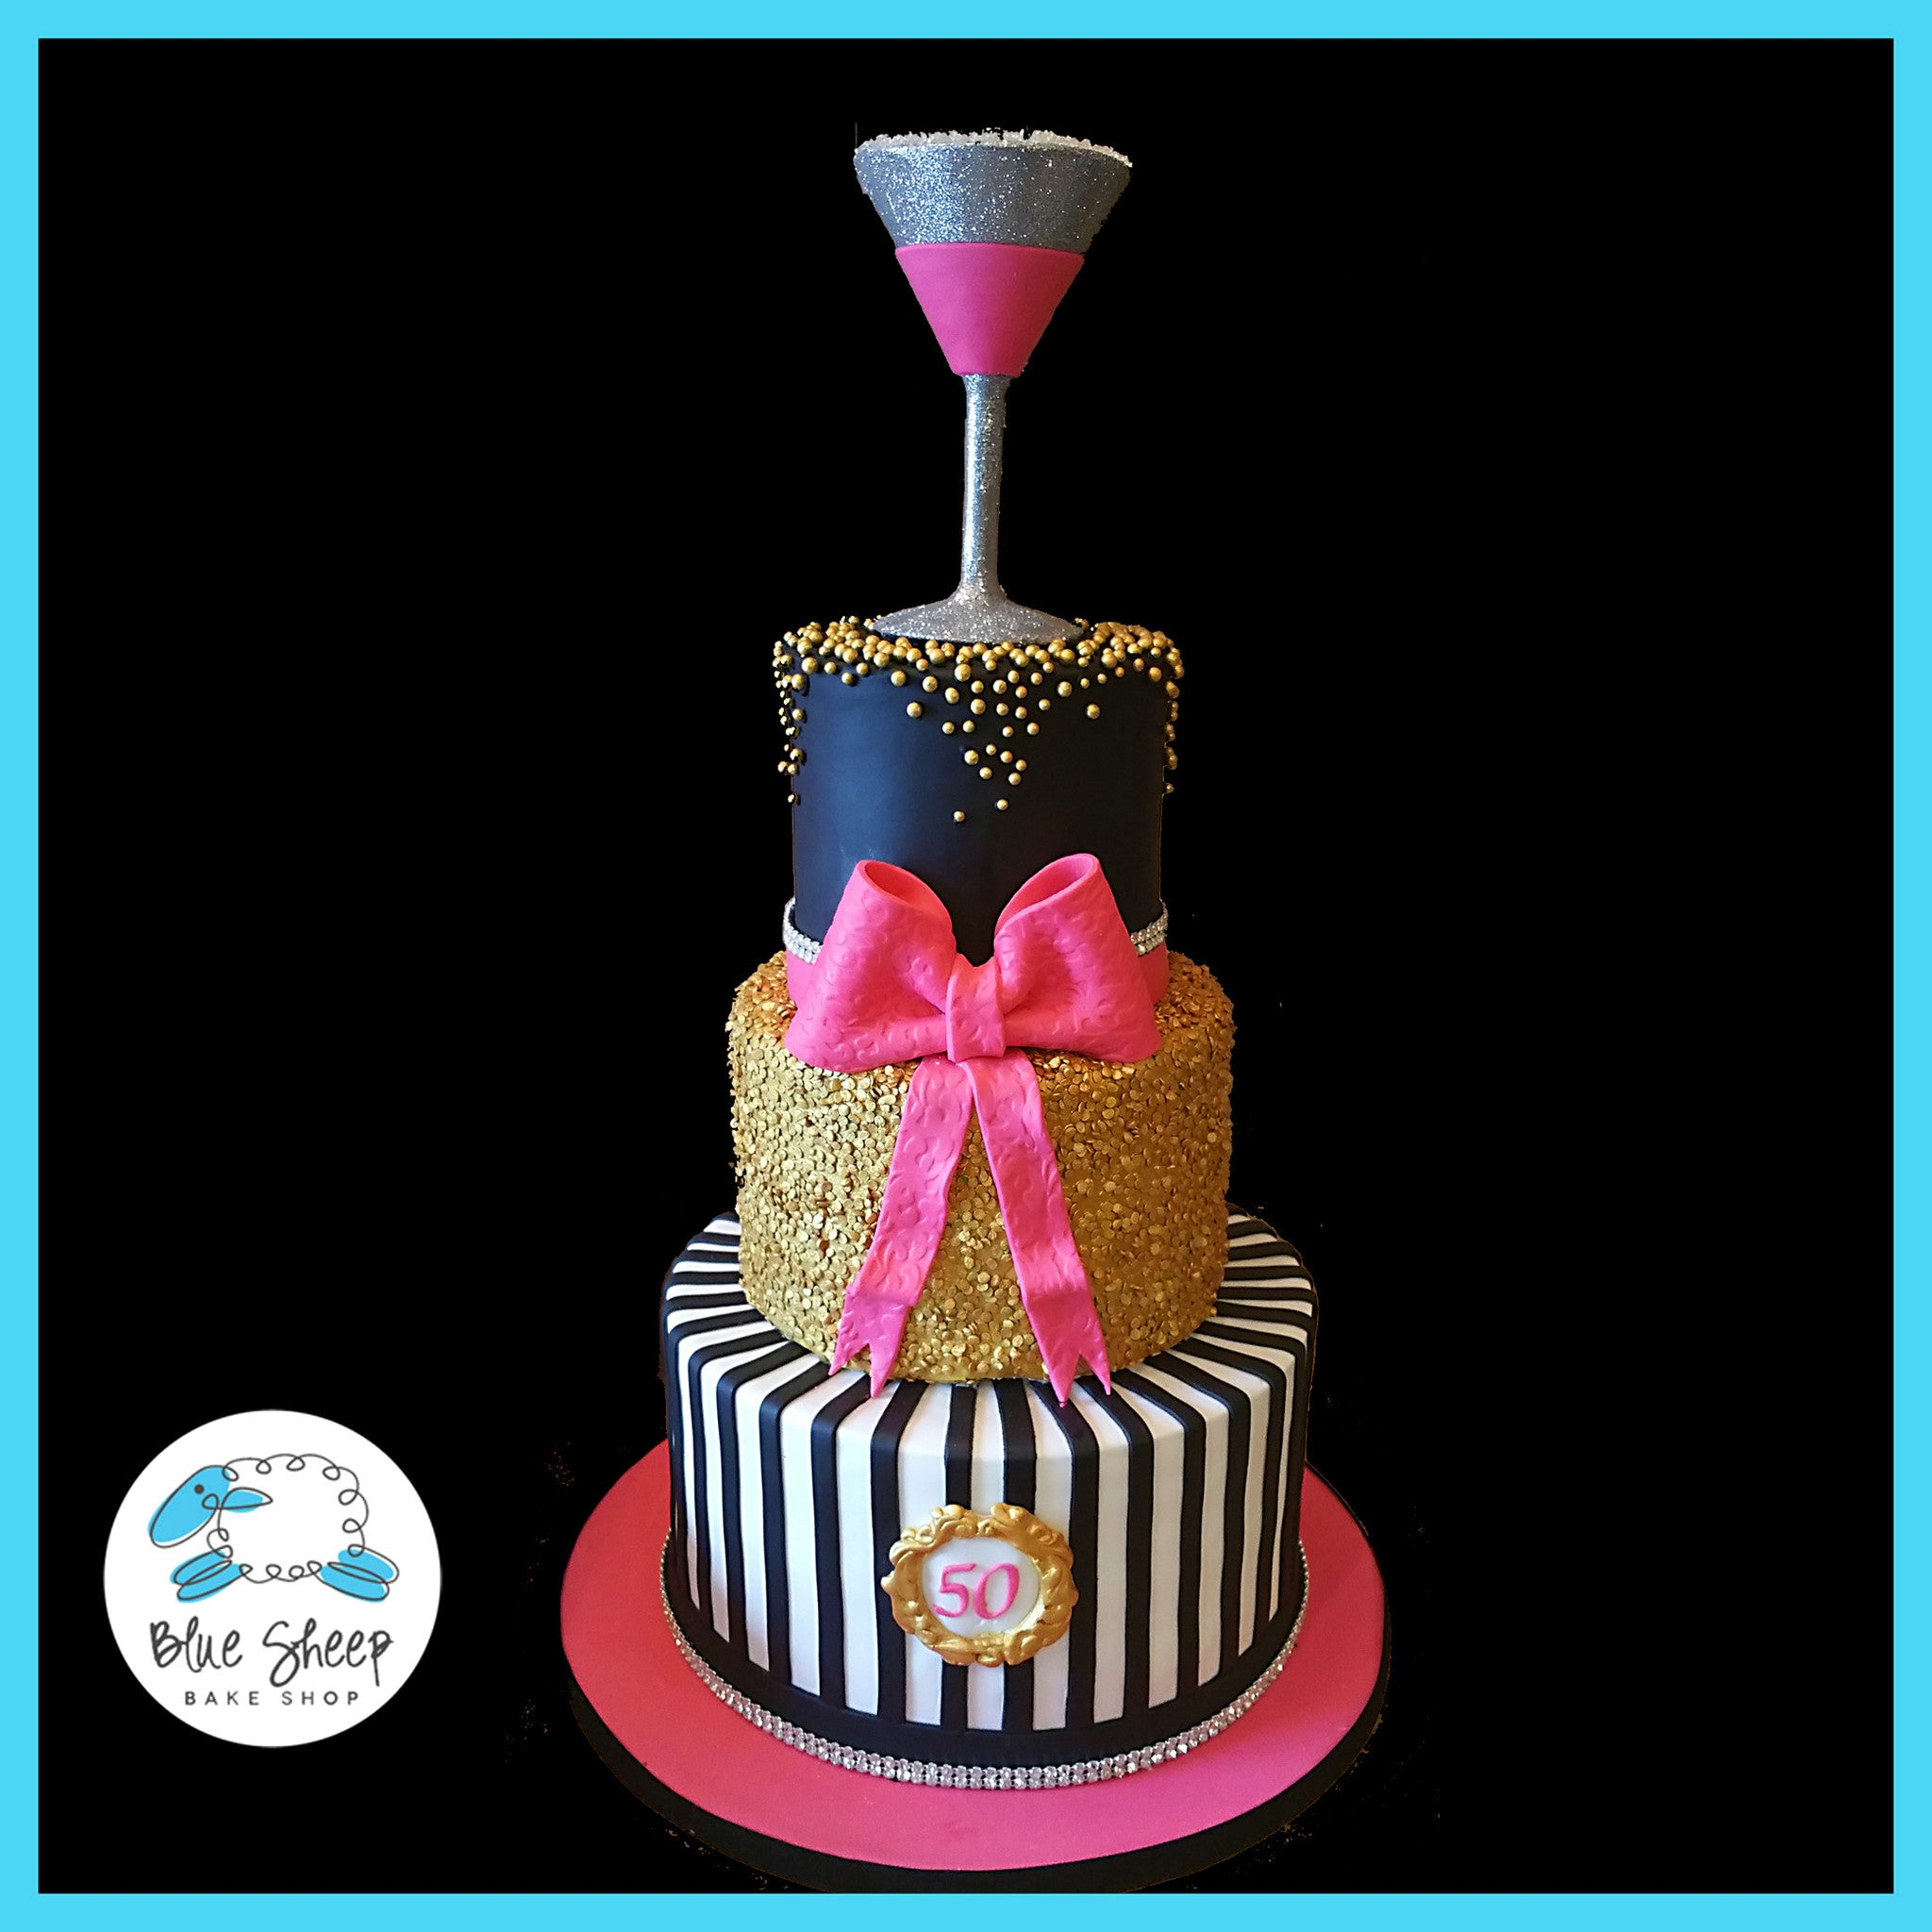 Swell Pink Black And Gold 50Th Birthday Cake Blue Sheep Bake Shop Funny Birthday Cards Online Aeocydamsfinfo